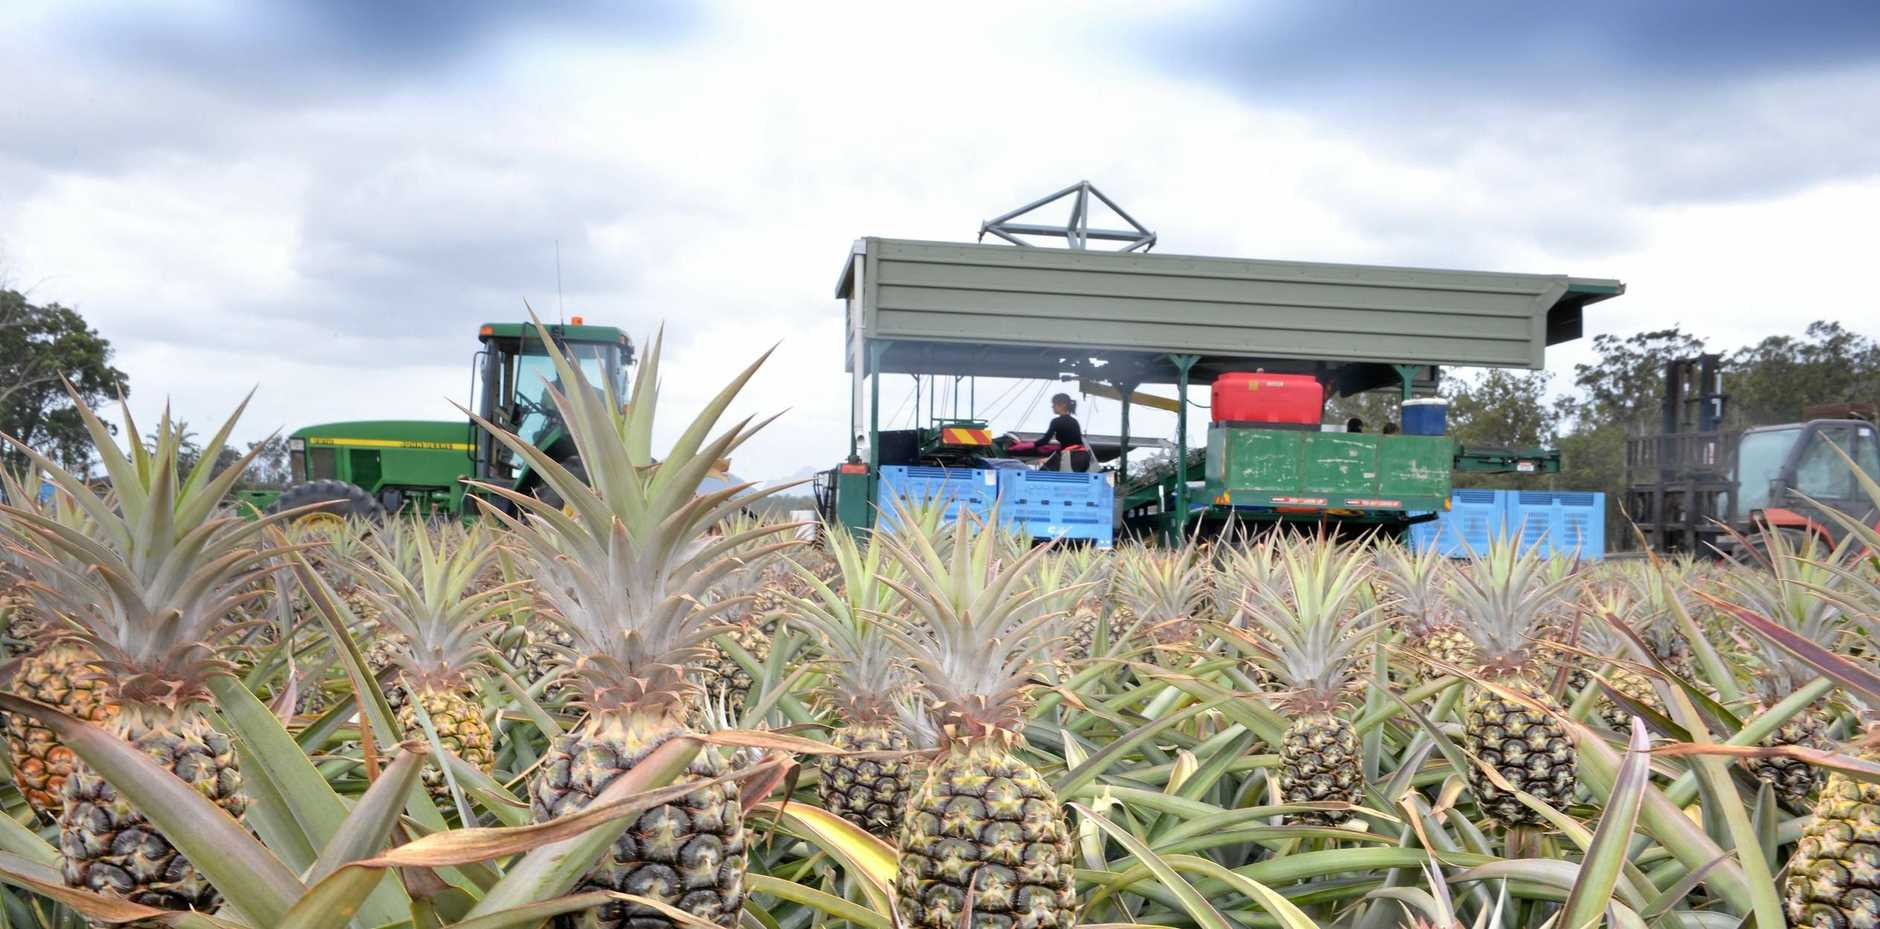 A pineapple farm.